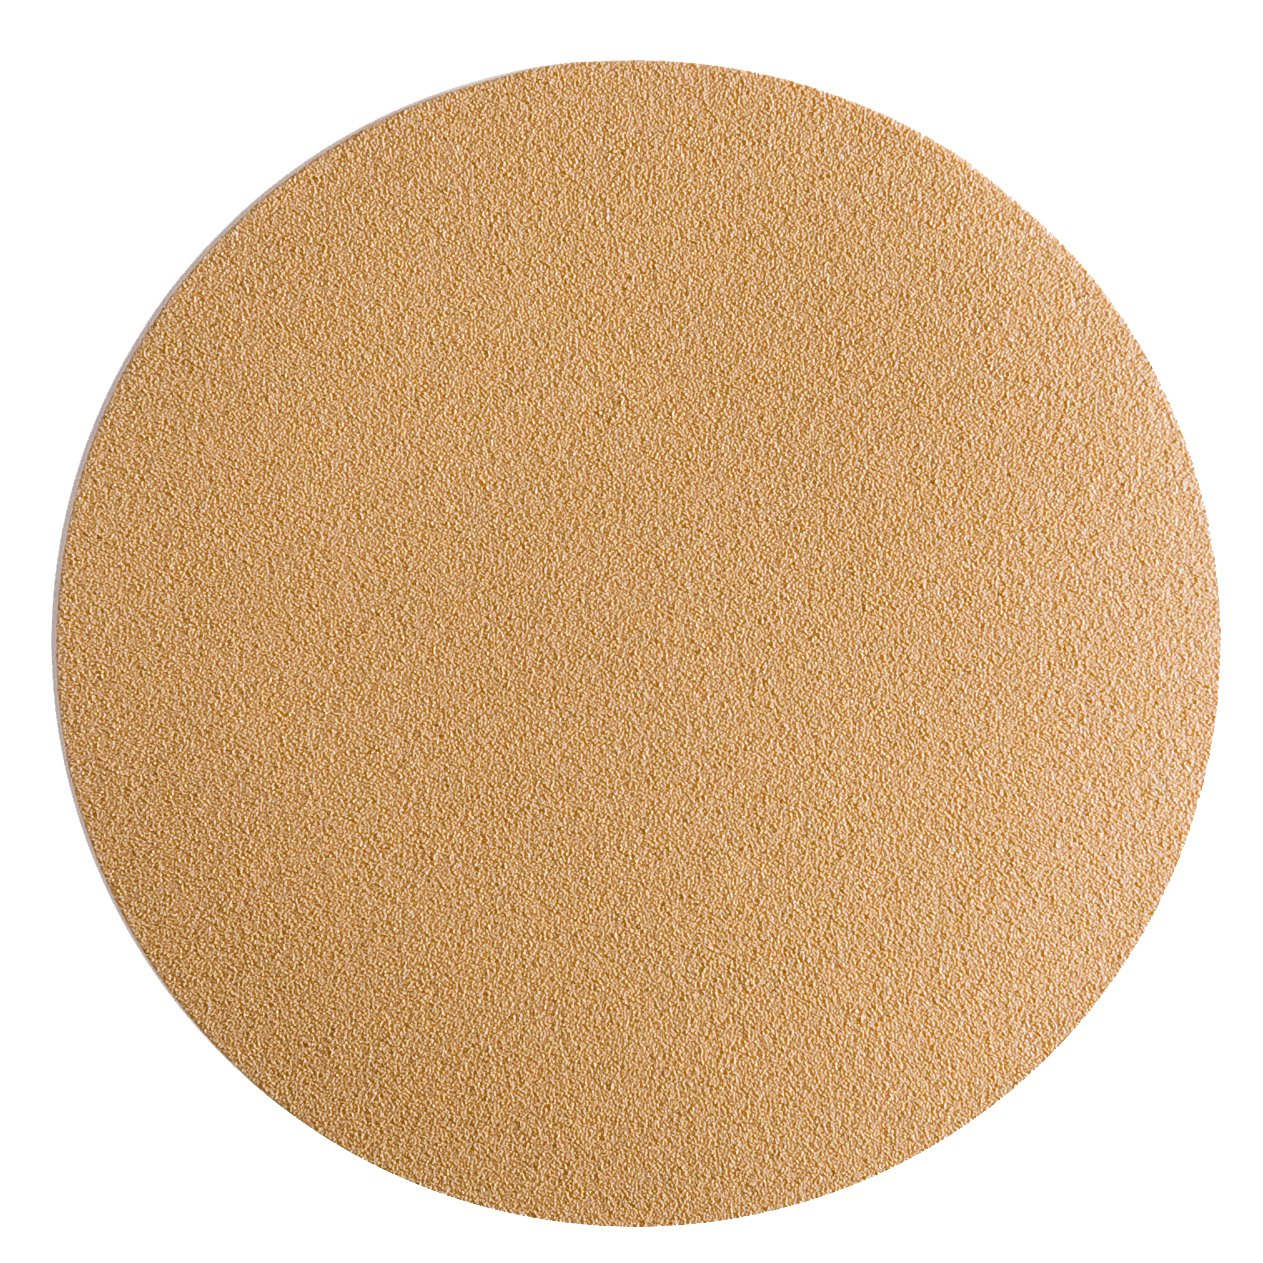 Sunmight 02419 1 Pack 6'' No Hole Velcro Disc (Gold Grit 800)